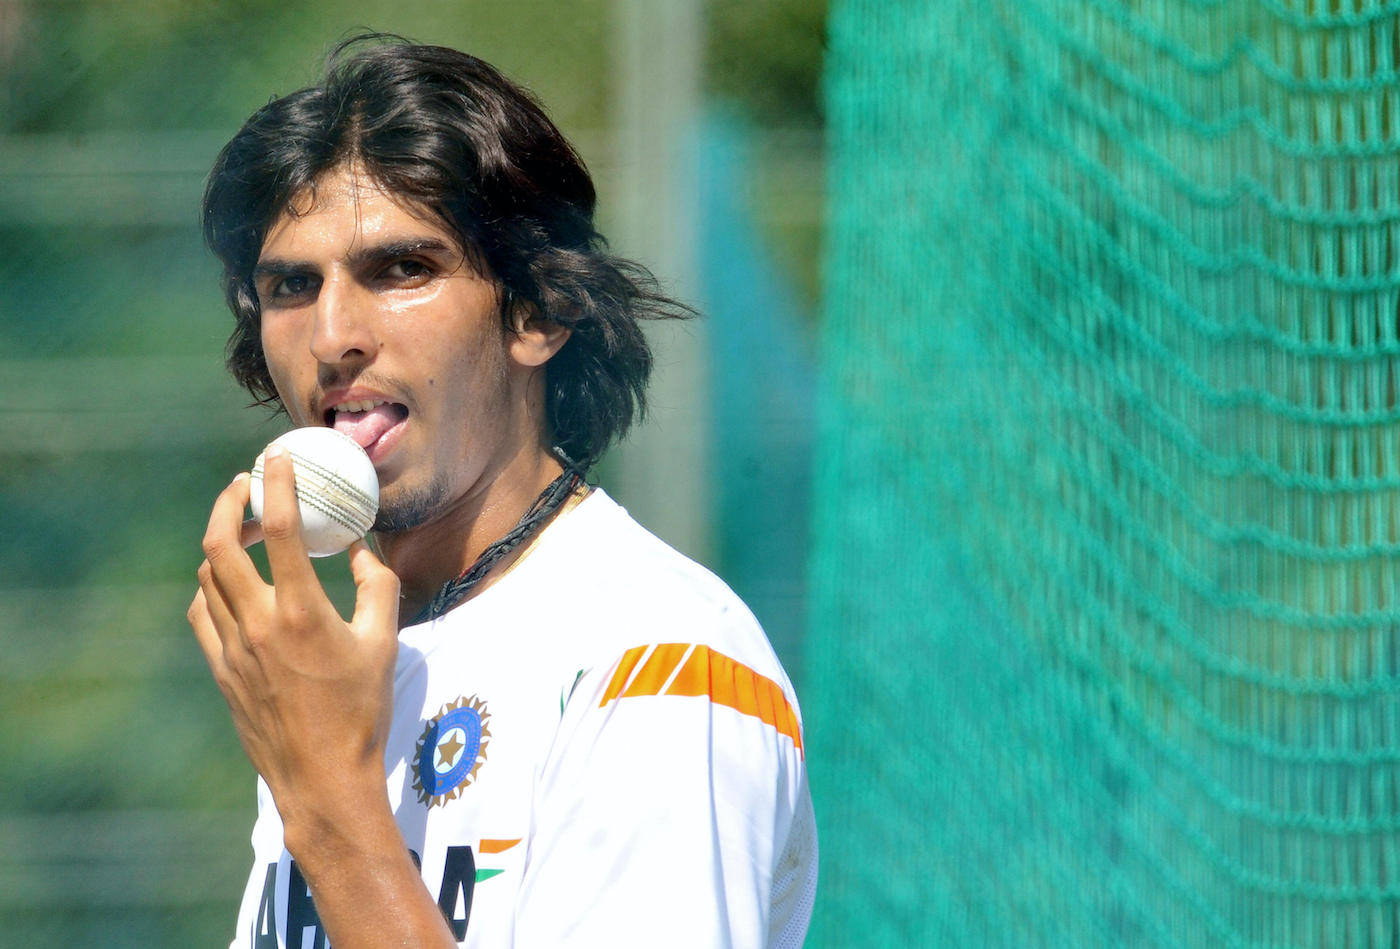 Ishant Sharma commits the flavour of the ball to memory